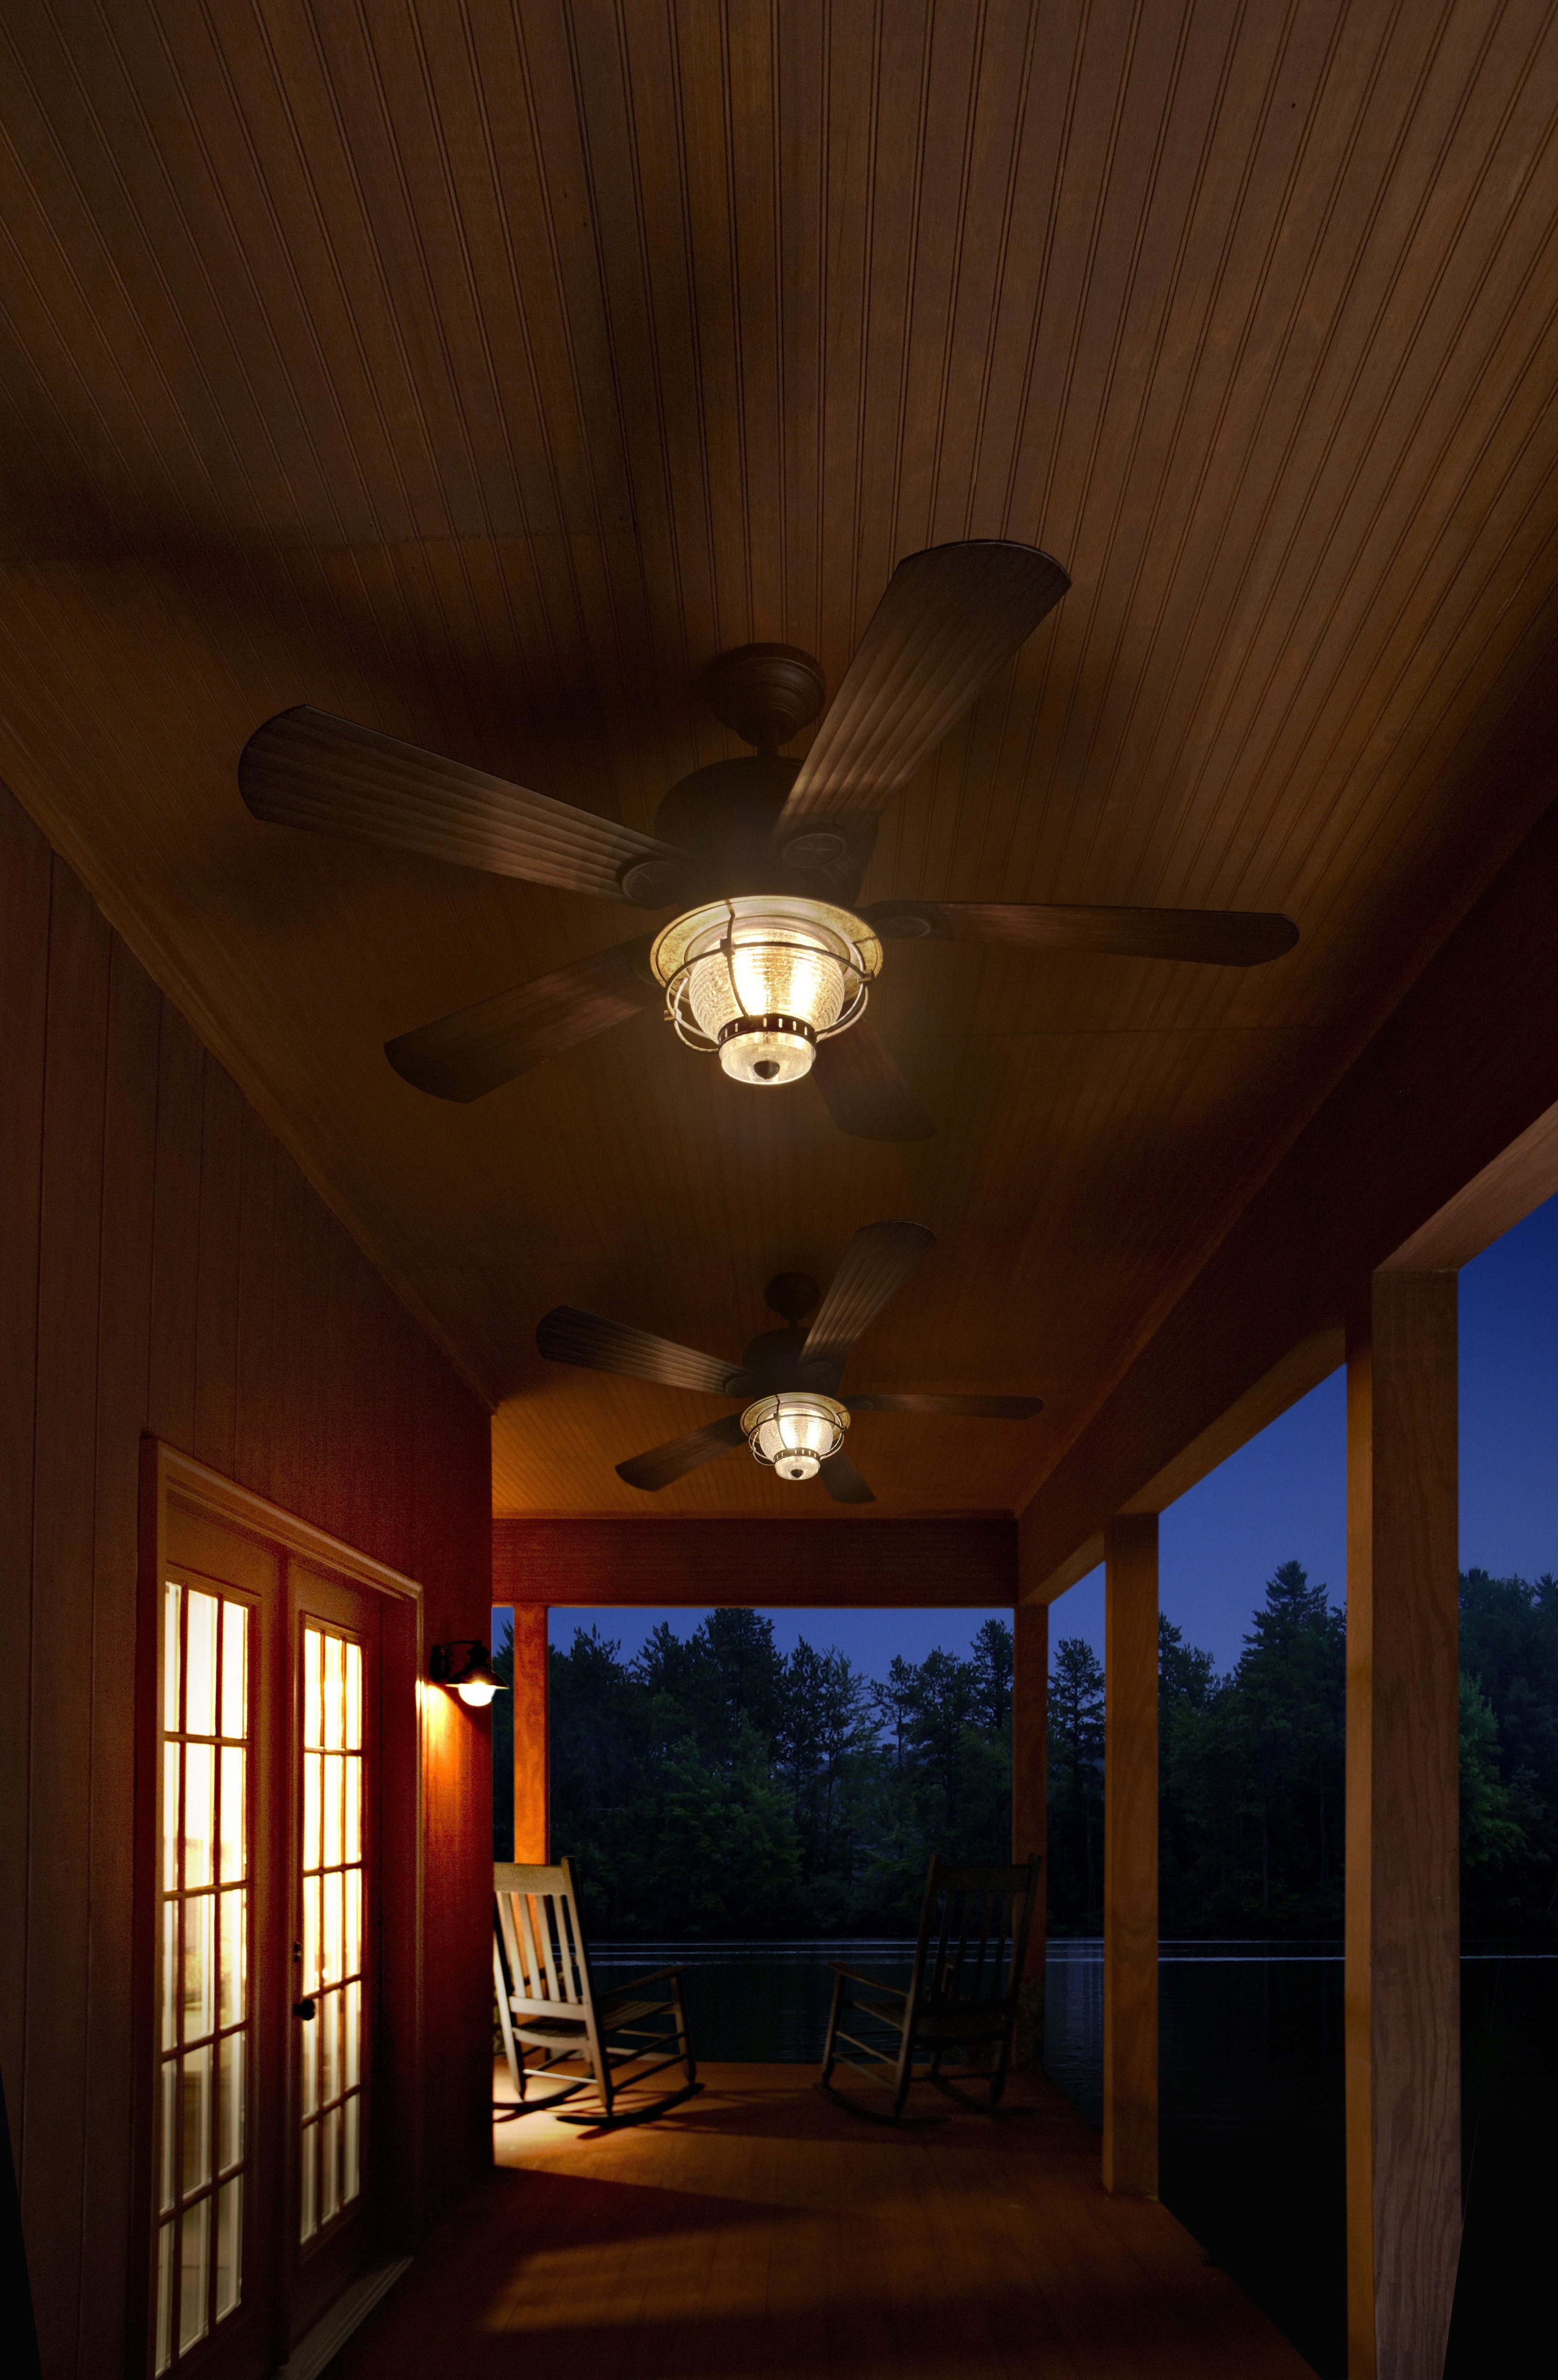 Outdoor Ceiling Fans For Porches For 2019 Be Prepared For The Summer Heat With Harbor Breeze Outdoor Ceiling (View 12 of 20)